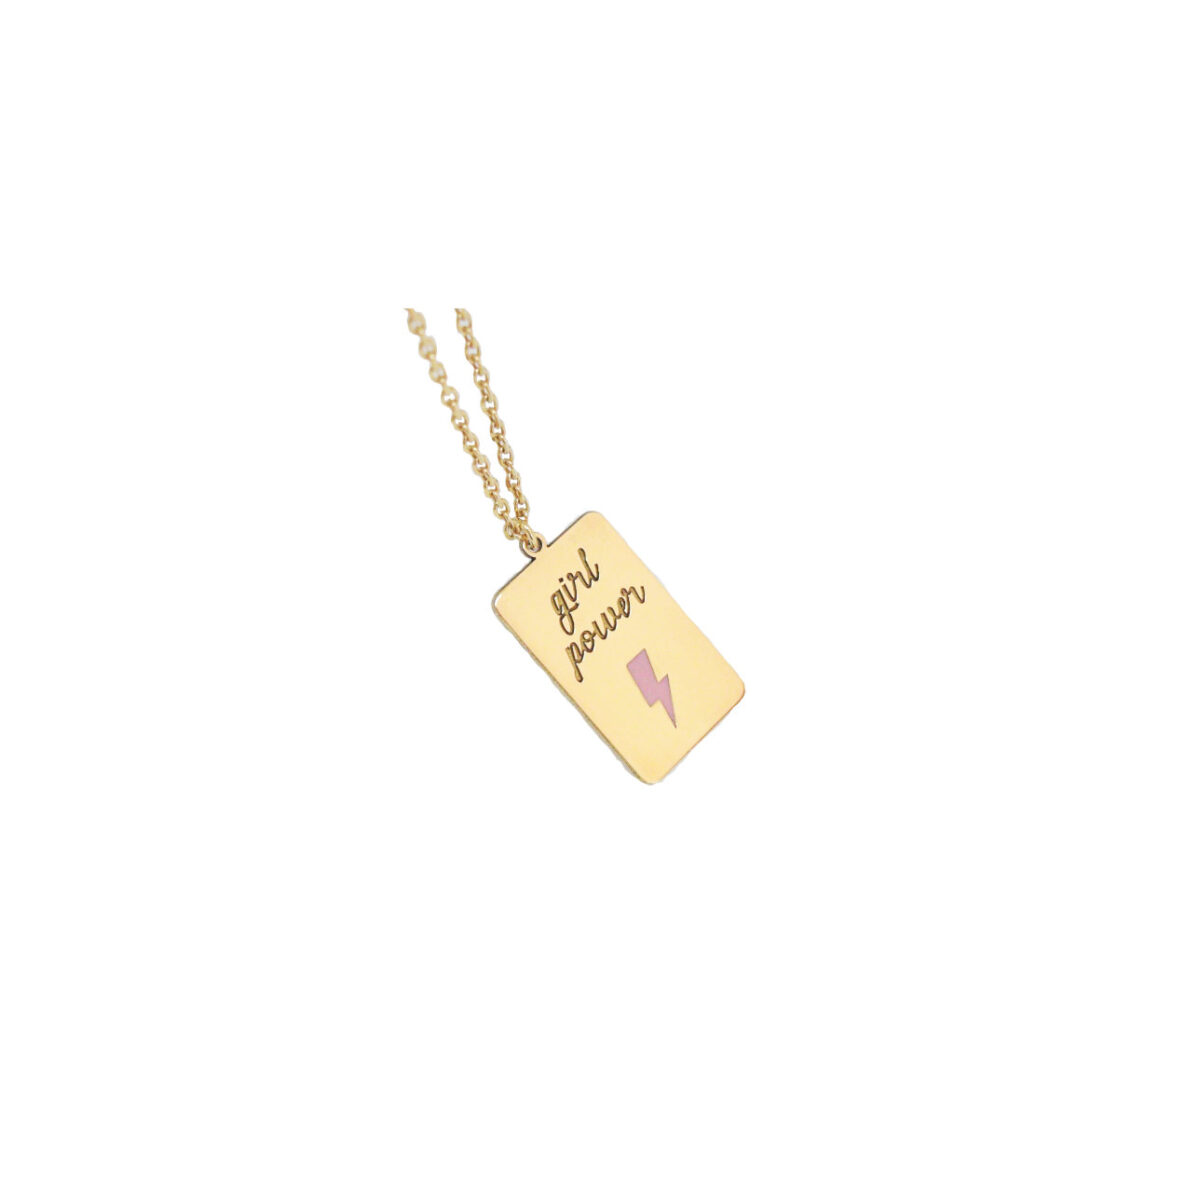 Girl Power II gold plated necklace